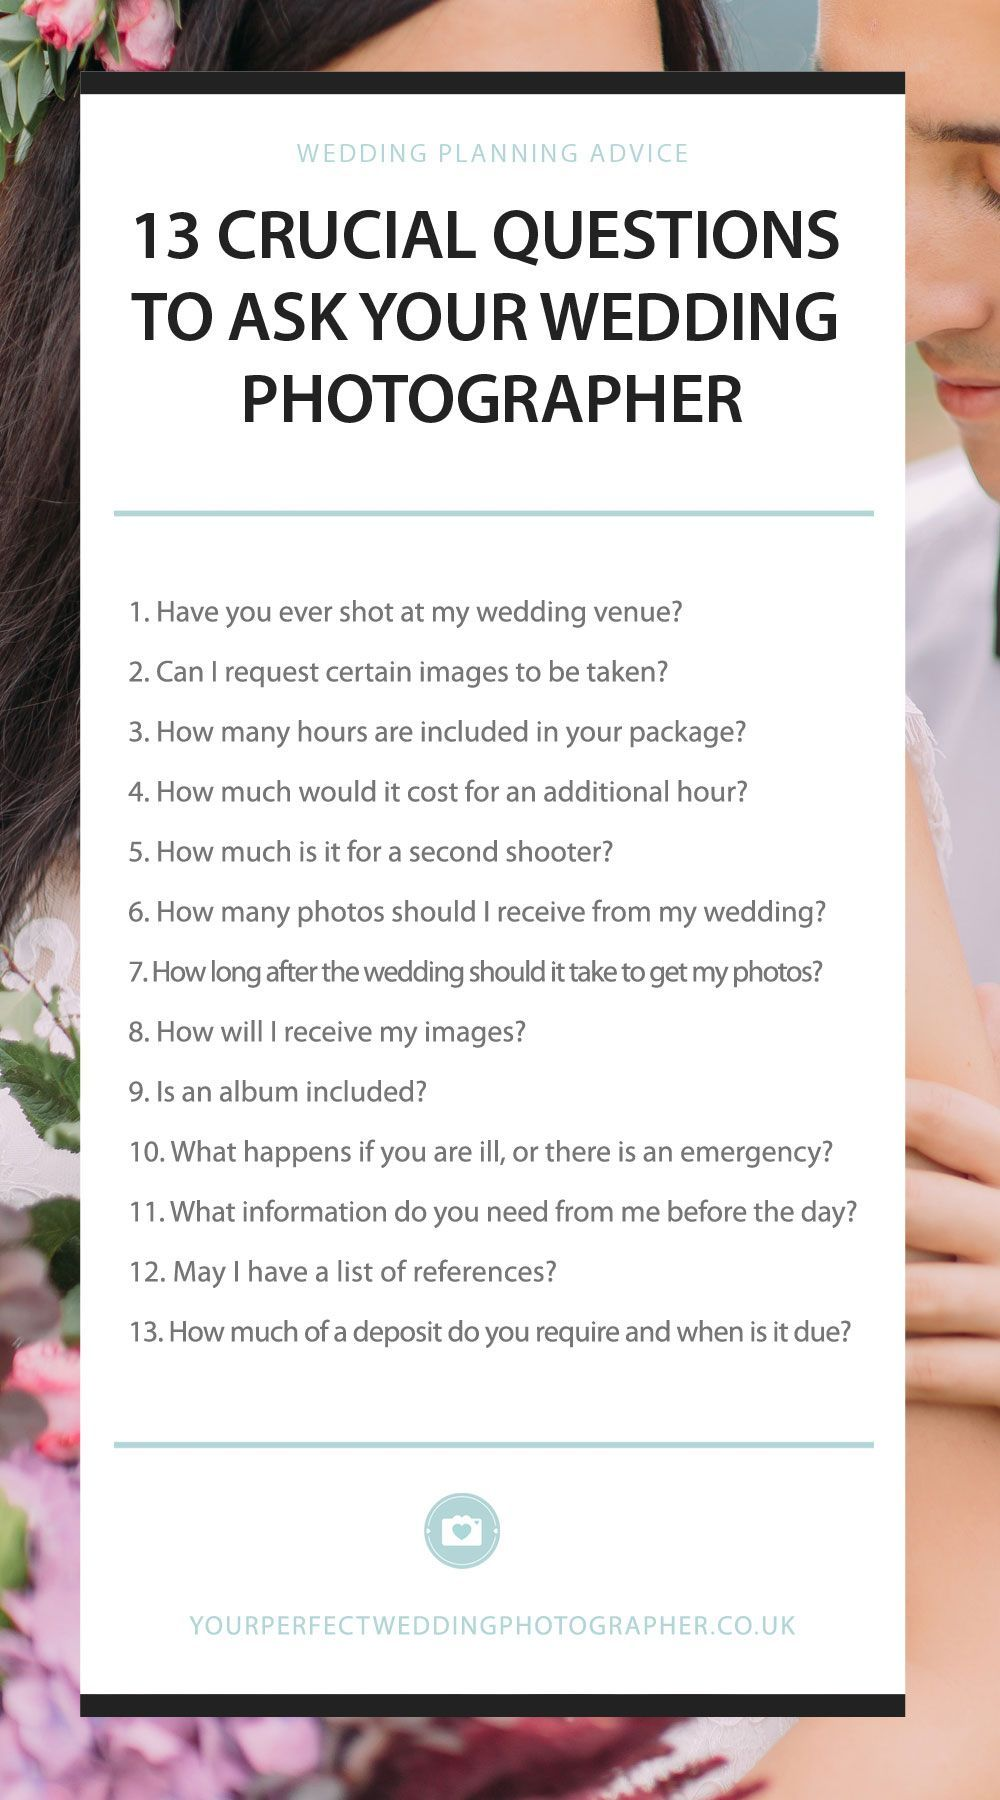 Discover 13 Questions That Your Wedding Photographer Should Have The Answer To And What You Ask Before Hiring Them